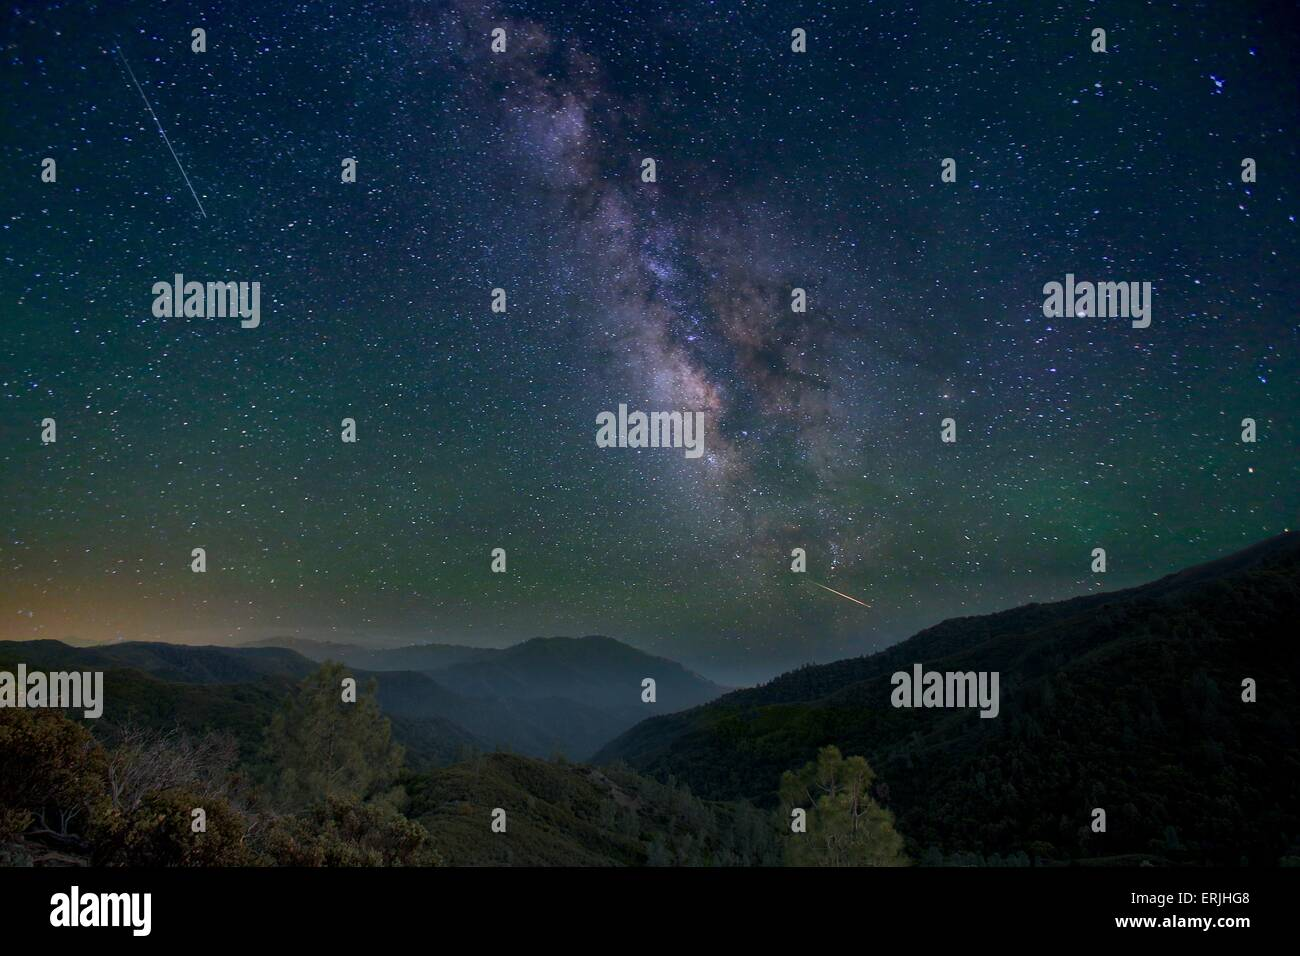 Incredible view of the Milky Way and shooting stars over Big Sur, California - Stock Image